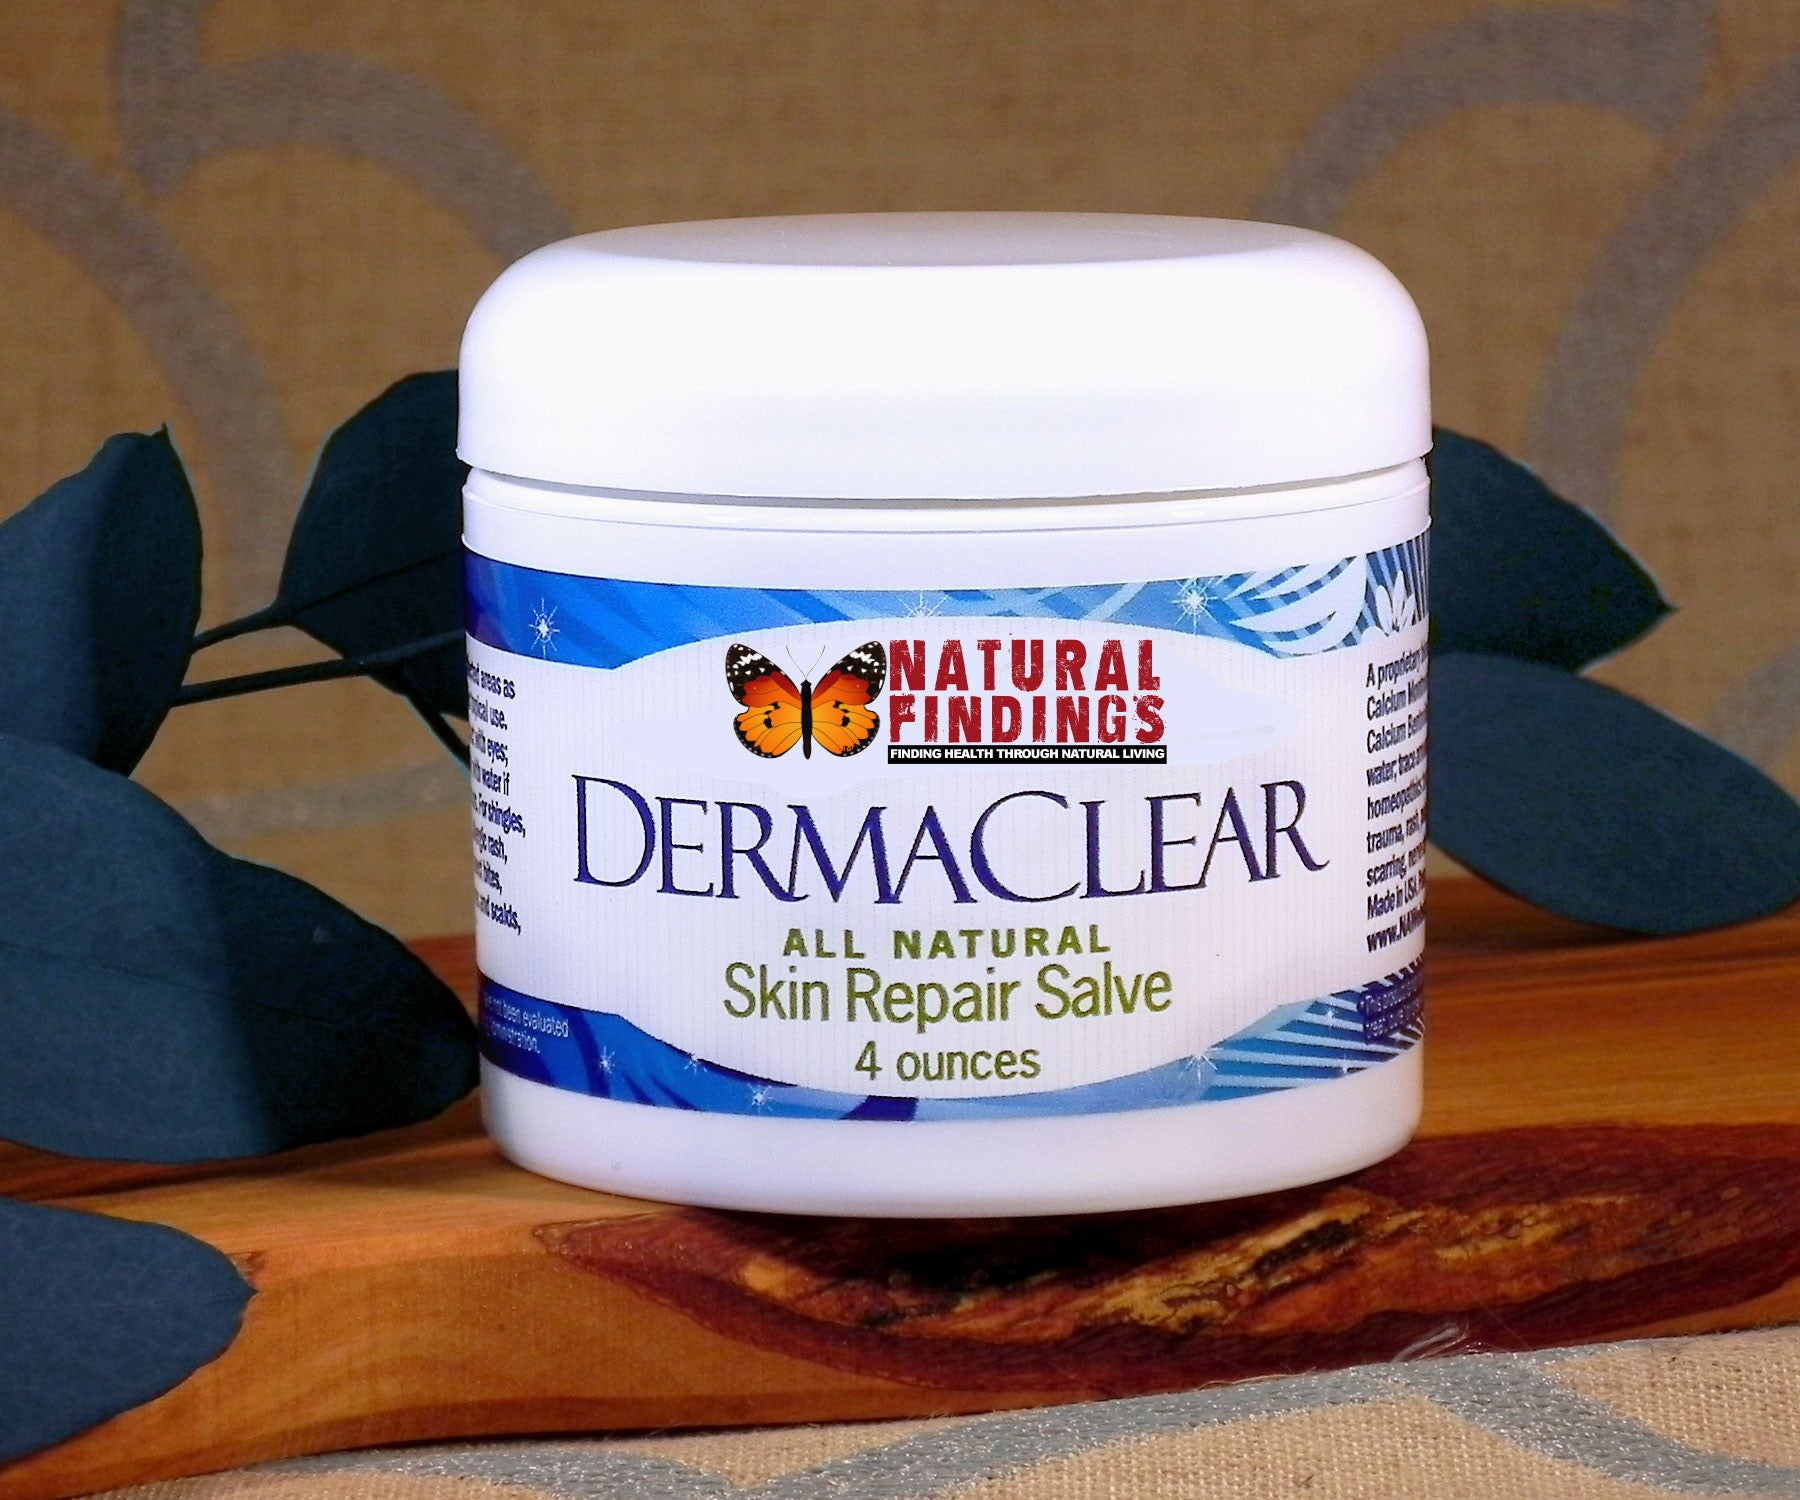 Treat Minor Burns and Scalds with Natural Findings DermaClear